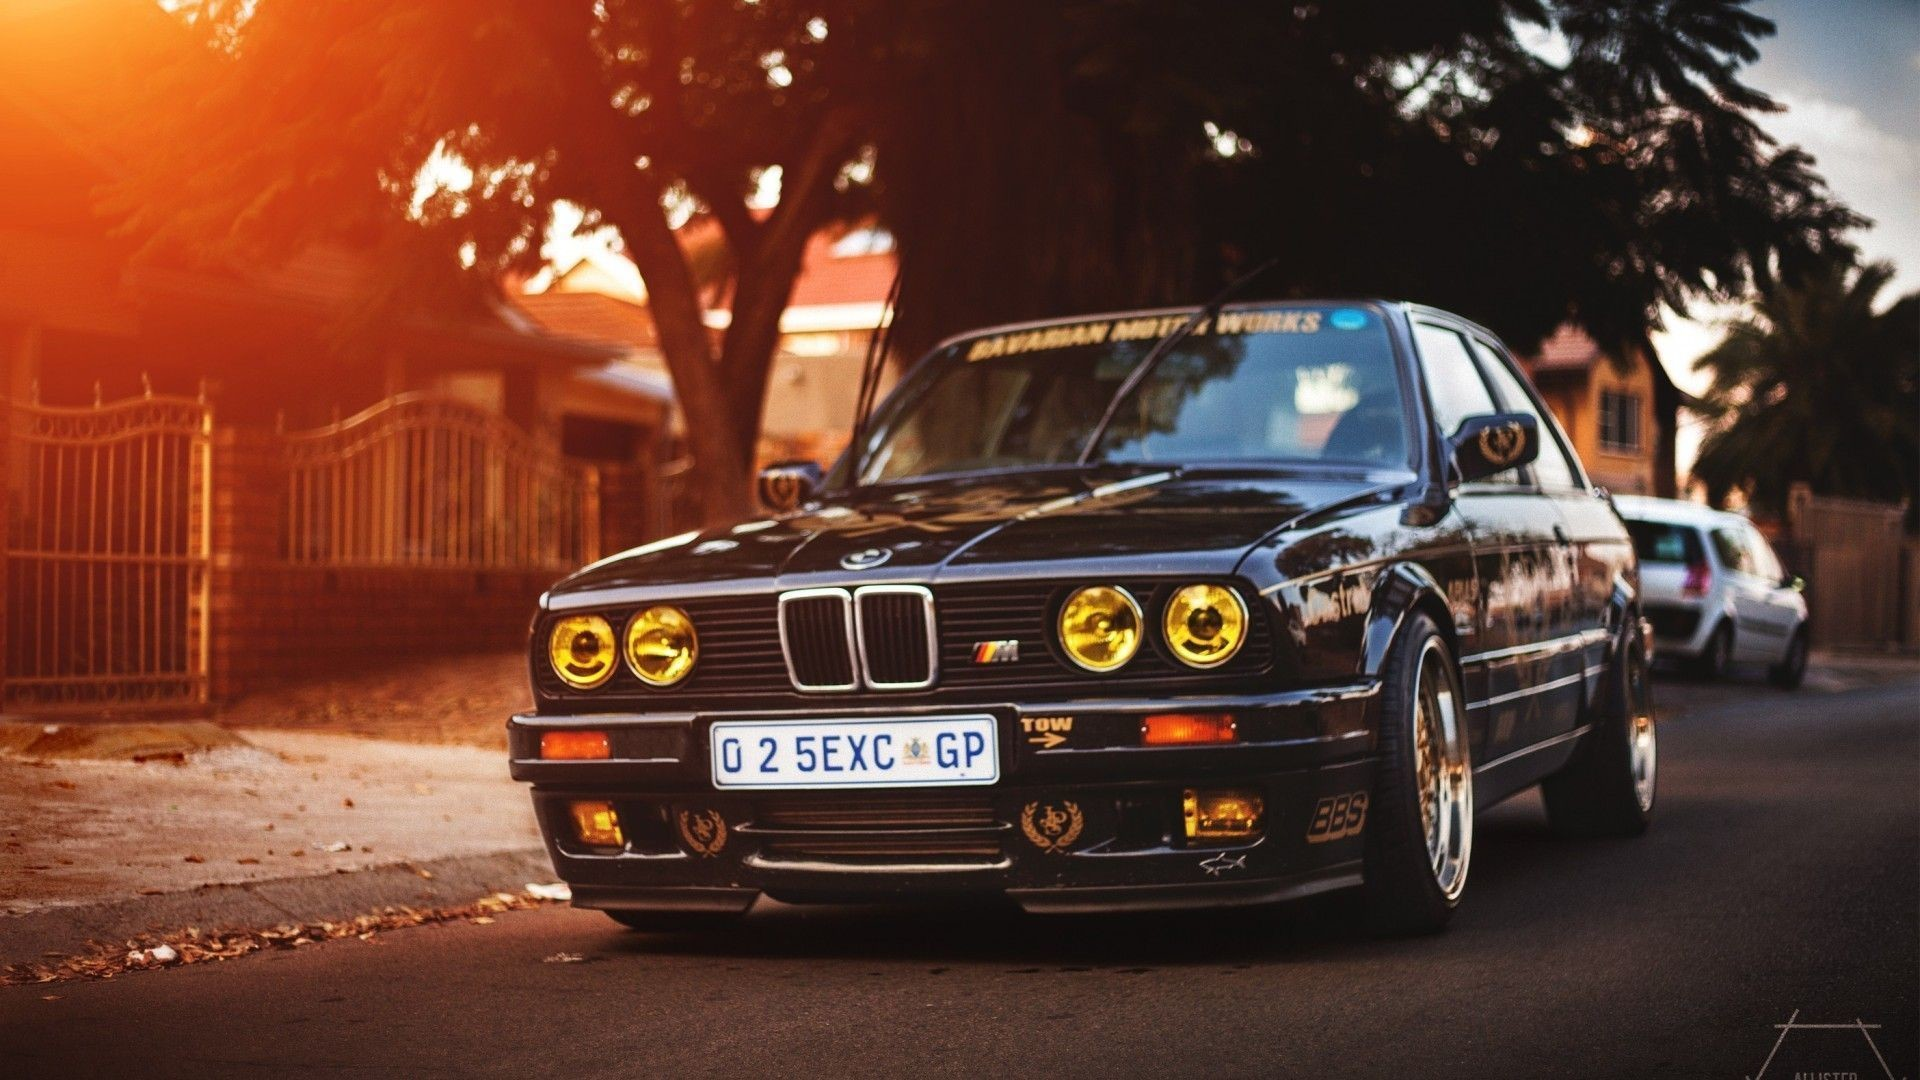 1920x1080 Bmw E30 Wallpapers Wallpaper Cave - HD Wallpapers